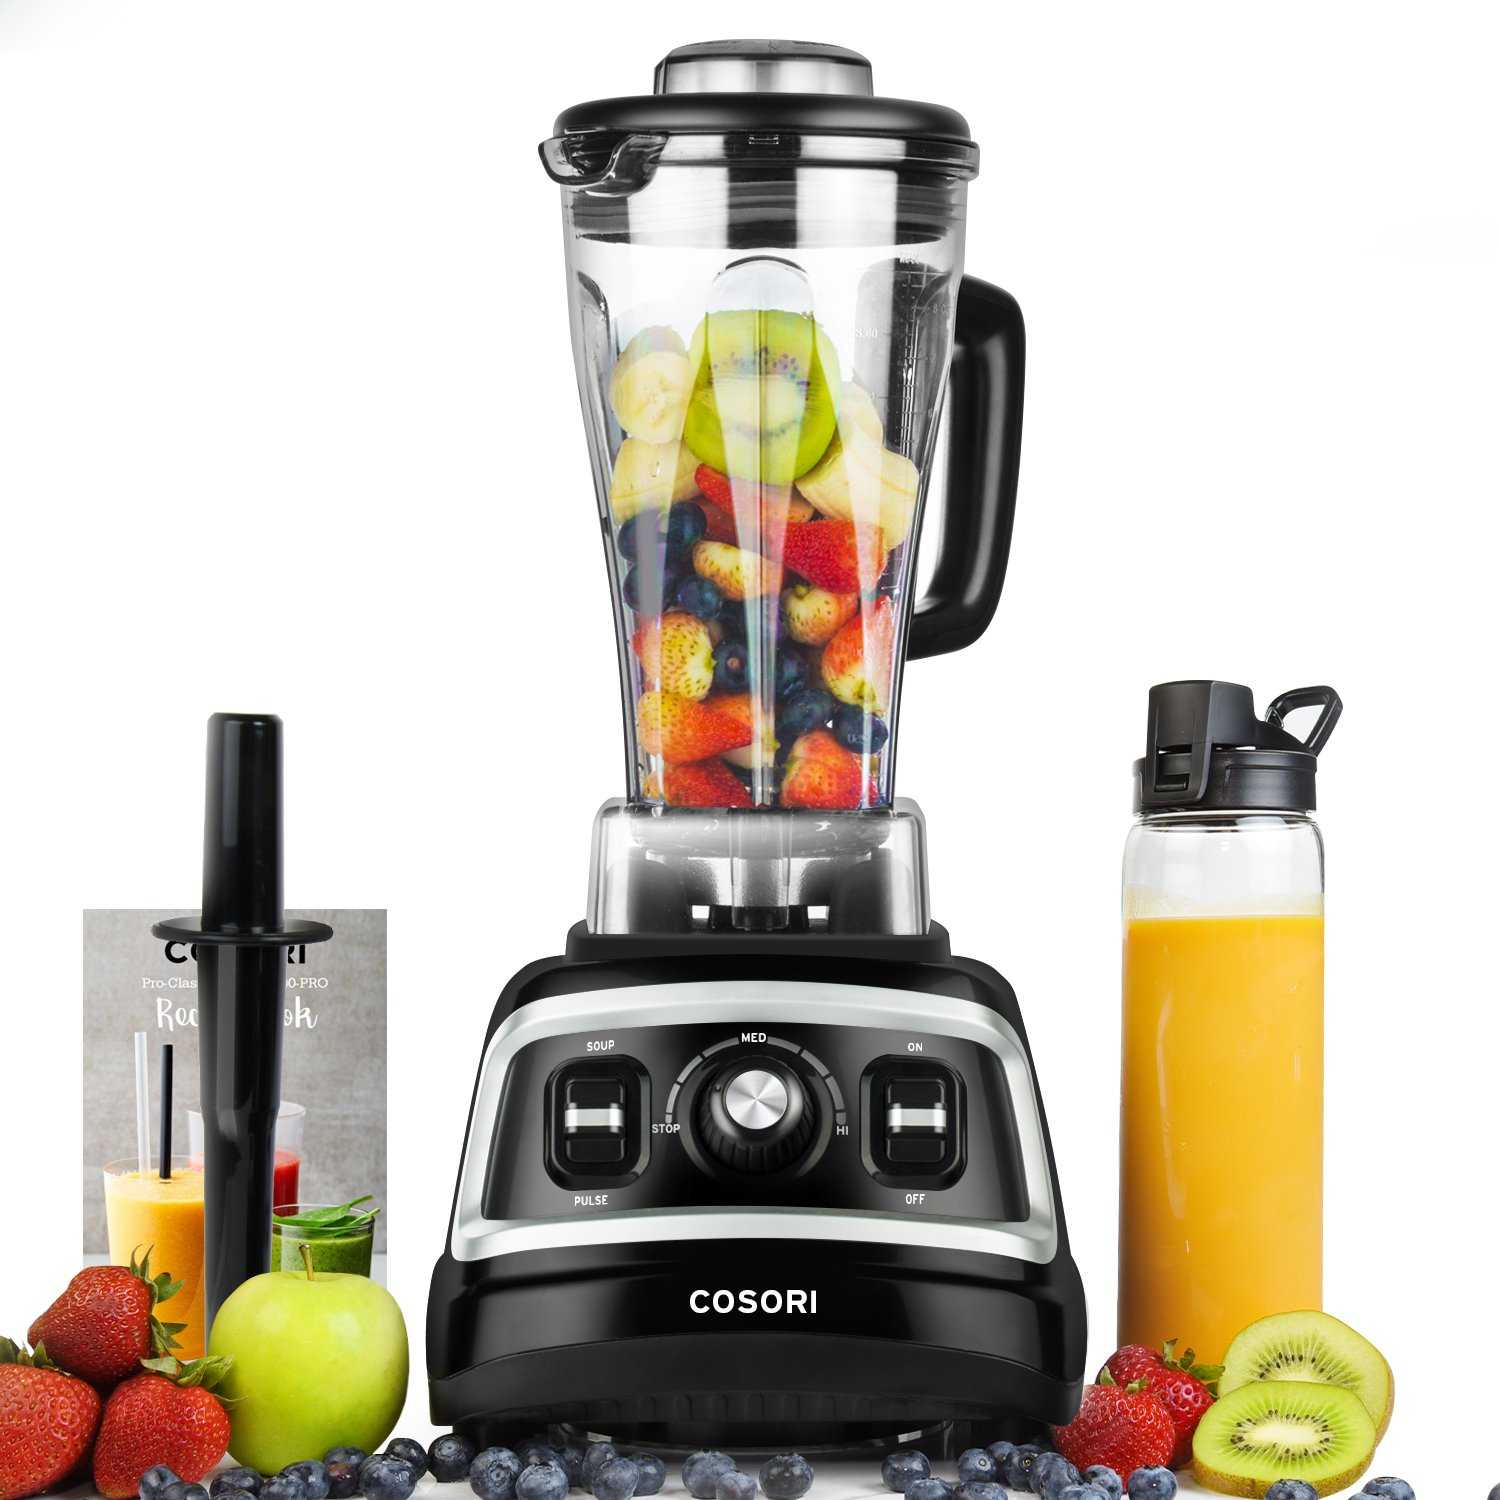 COSORI 1500W Blender for Shakes and Smoothies, Professional Kitchen Smoothie Blender Maker with 70oz BPA-Free Pitcher & 27oz Bottle,Commercial Heavy Duty Food Processor for Ice,Soup,Nuts &Batter,2HP